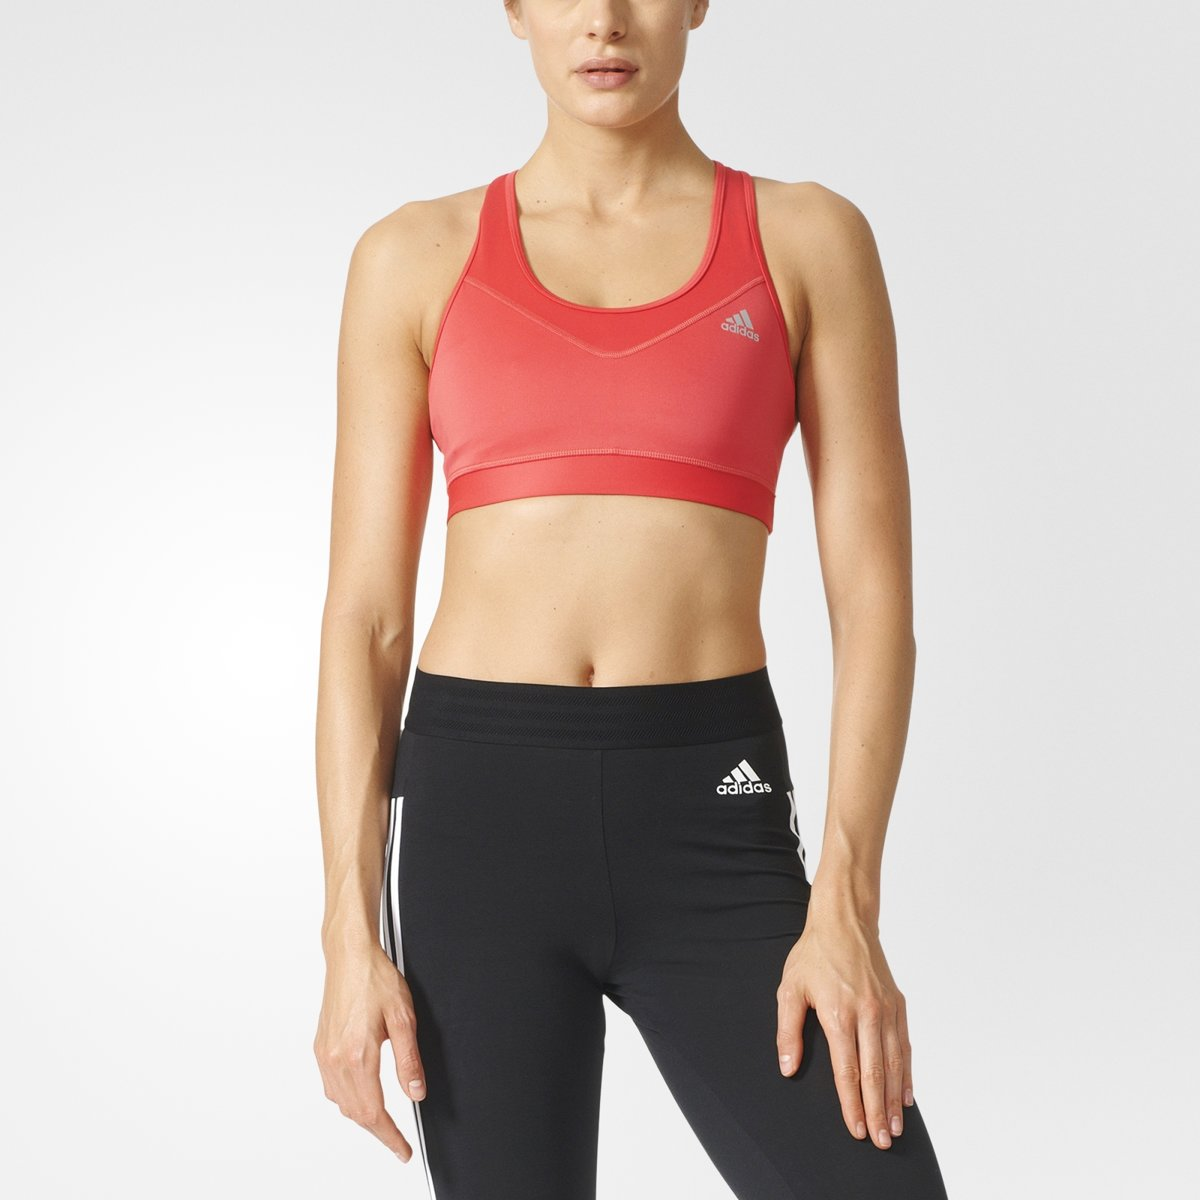 2017 New Adidas : Womens Bras,Clothing,Accessories,Womens